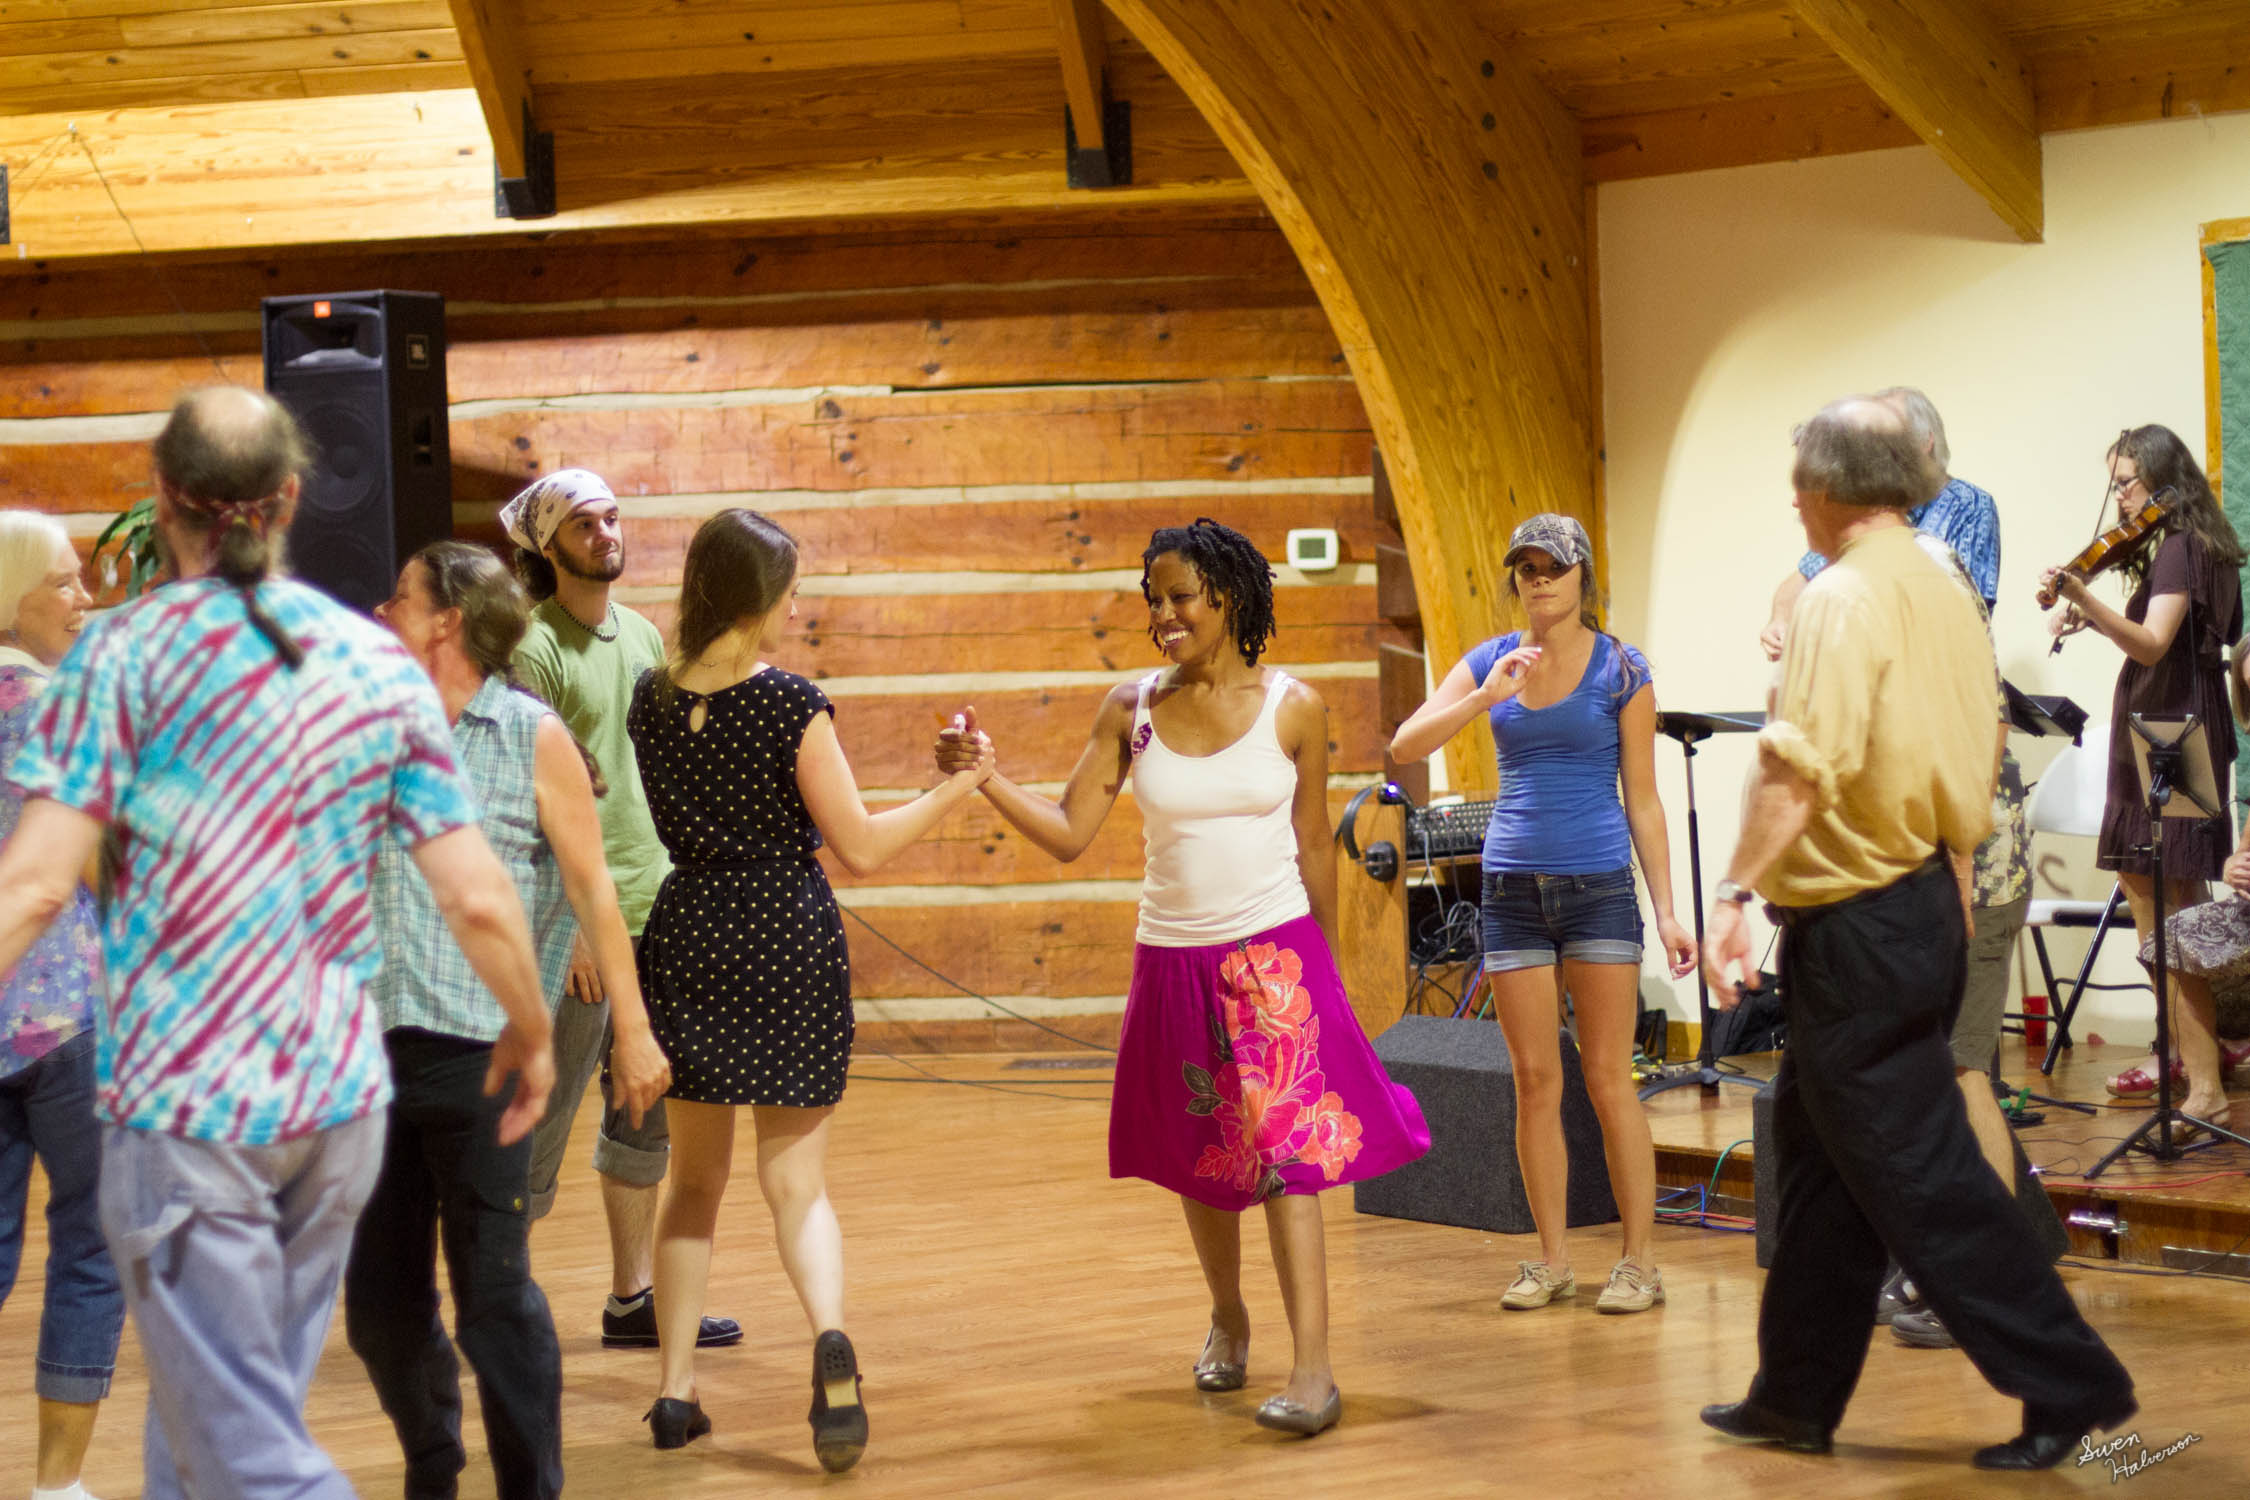 Contra dancing in Berea-011.jpg